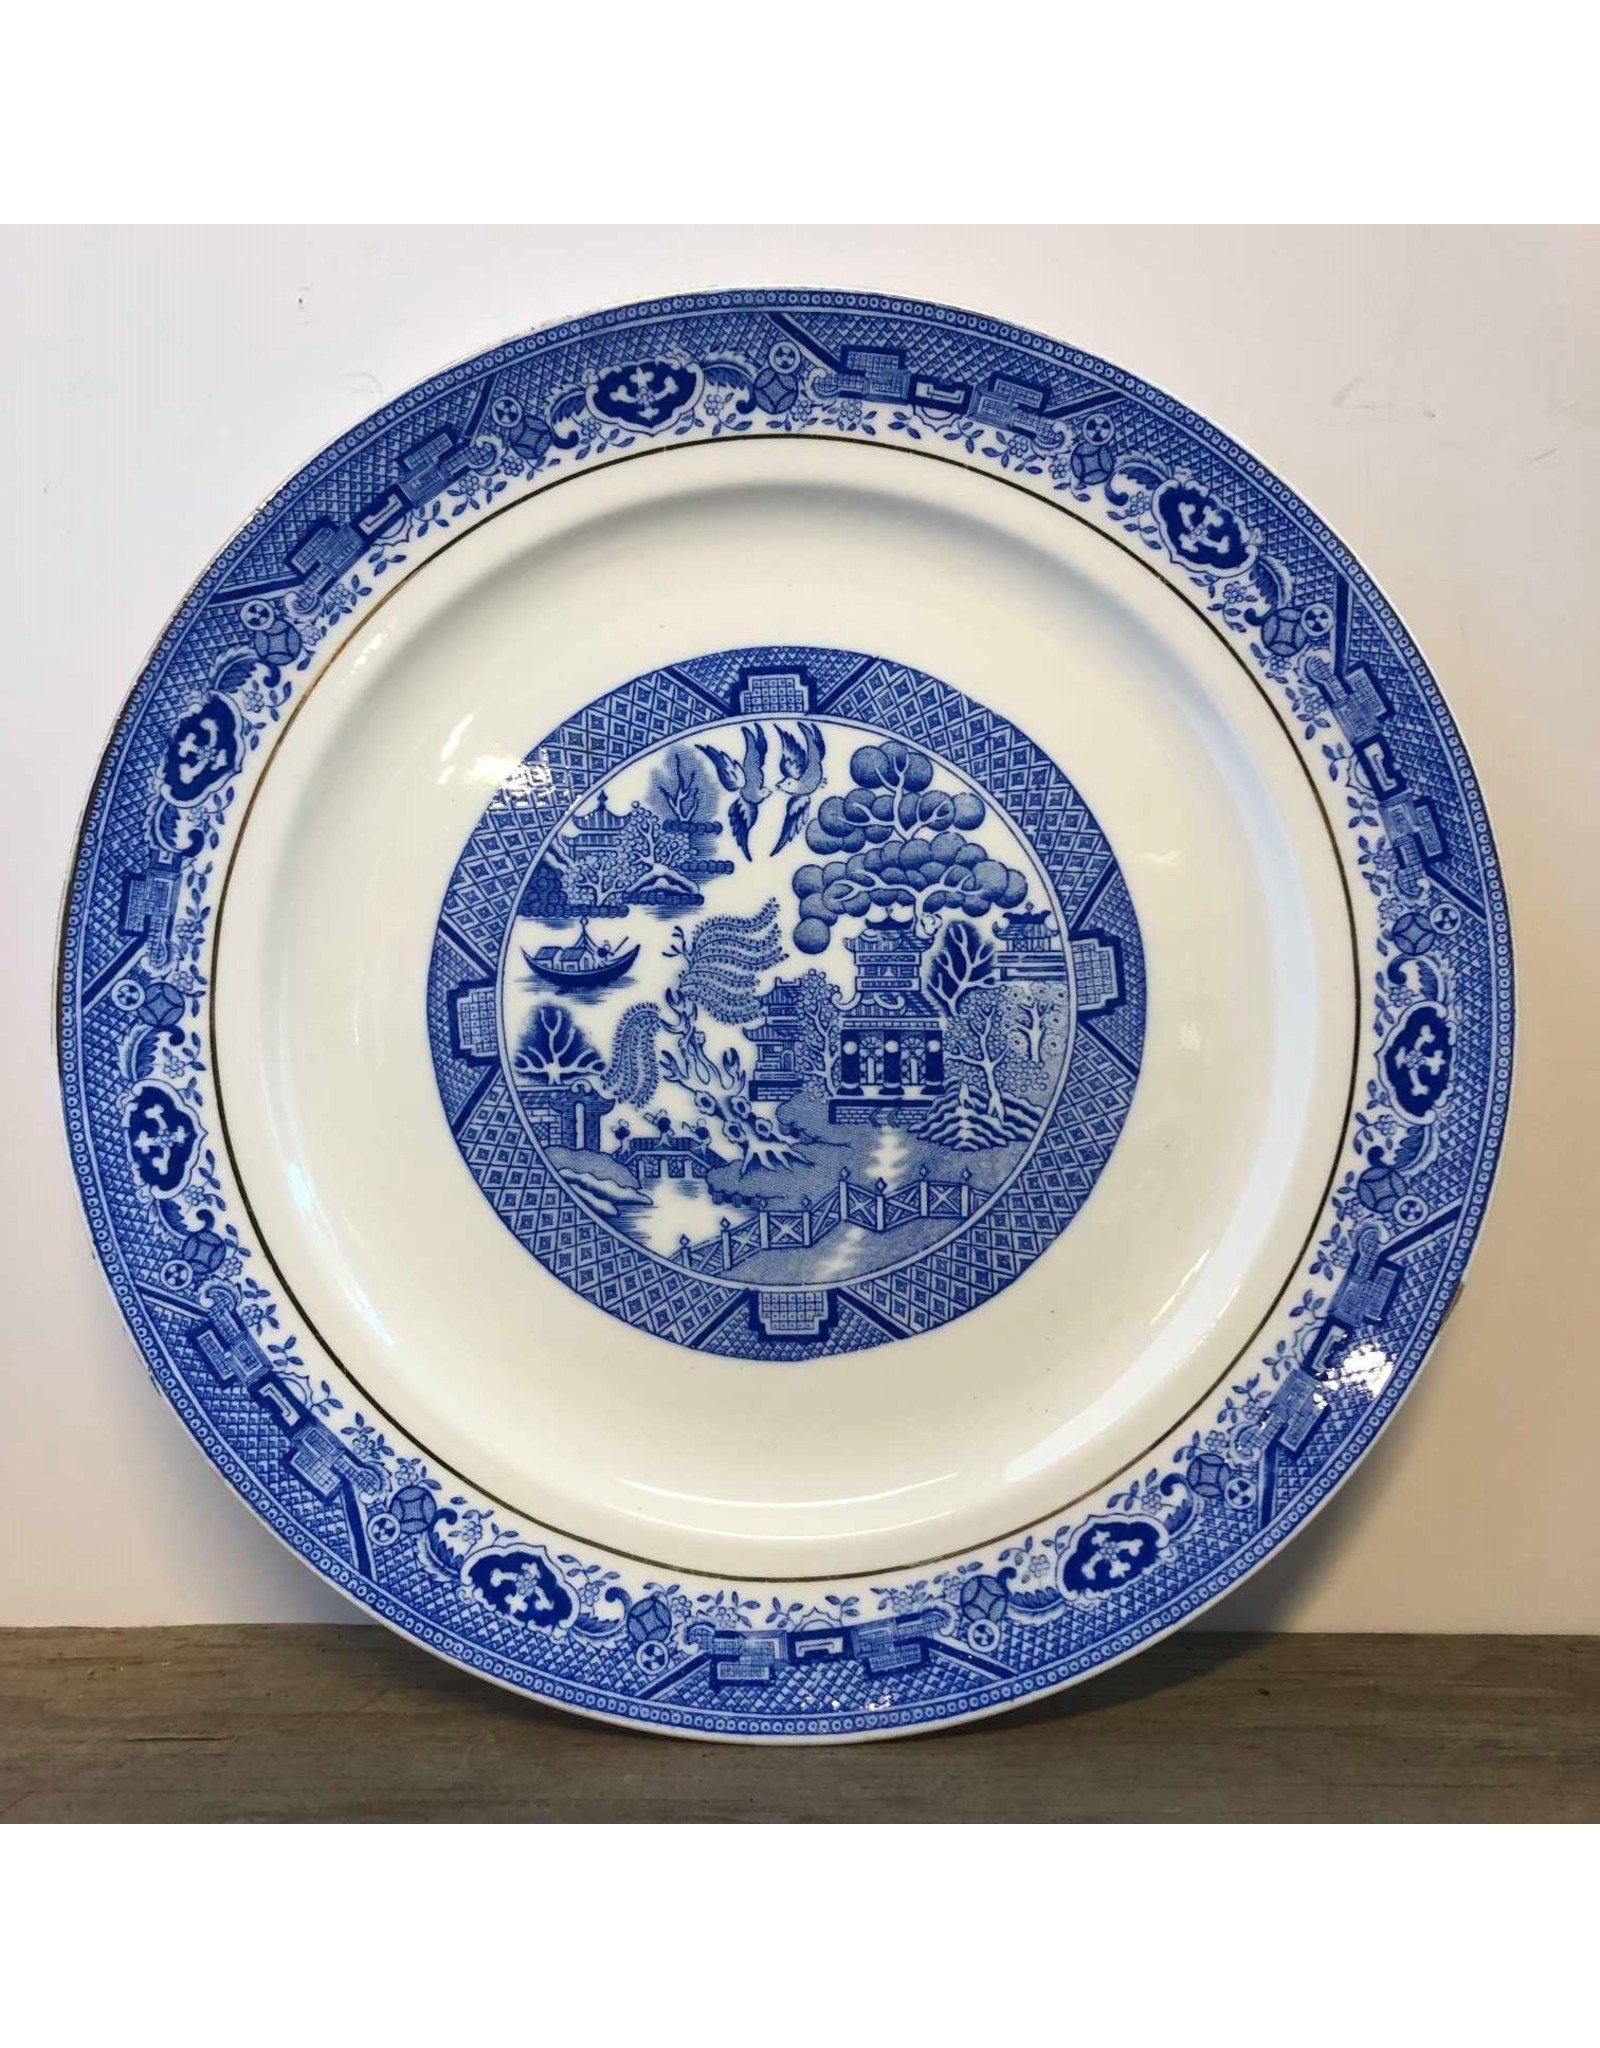 Dinner plate - Royal Grafton bone chine blue willow, 1930s